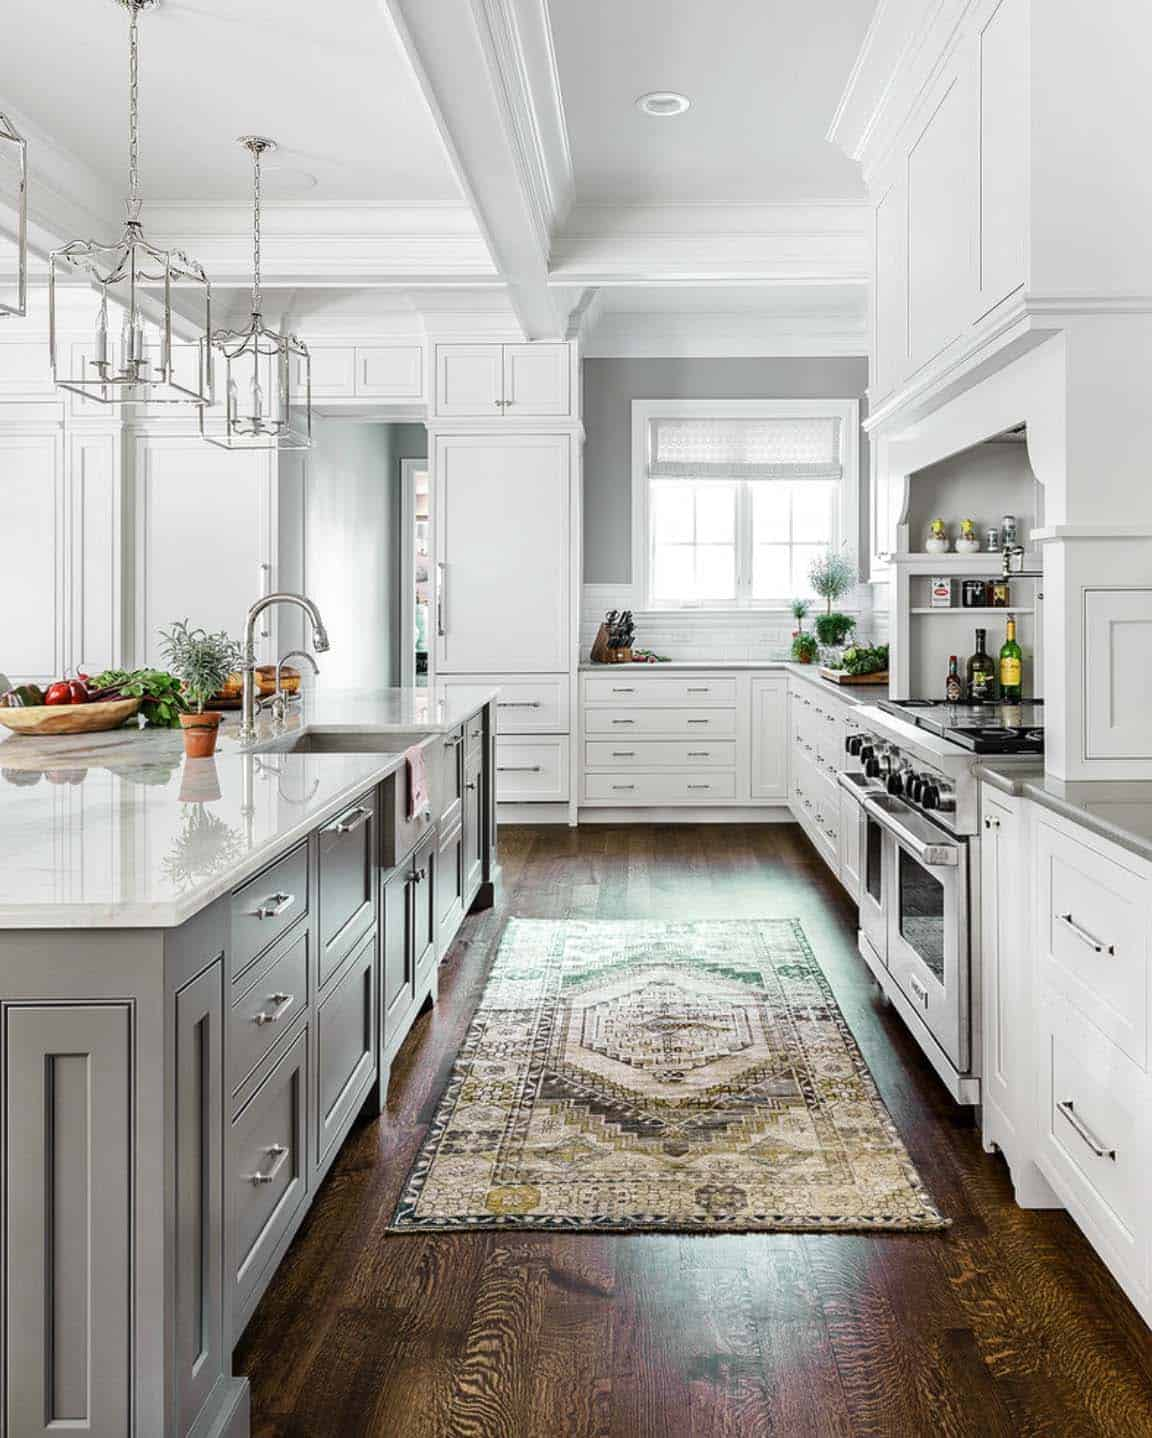 23 Best Cottage Kitchen Decorating Ideas And Designs For 2019: 30+ Beautiful And Inspiring Light-filled Kitchens With